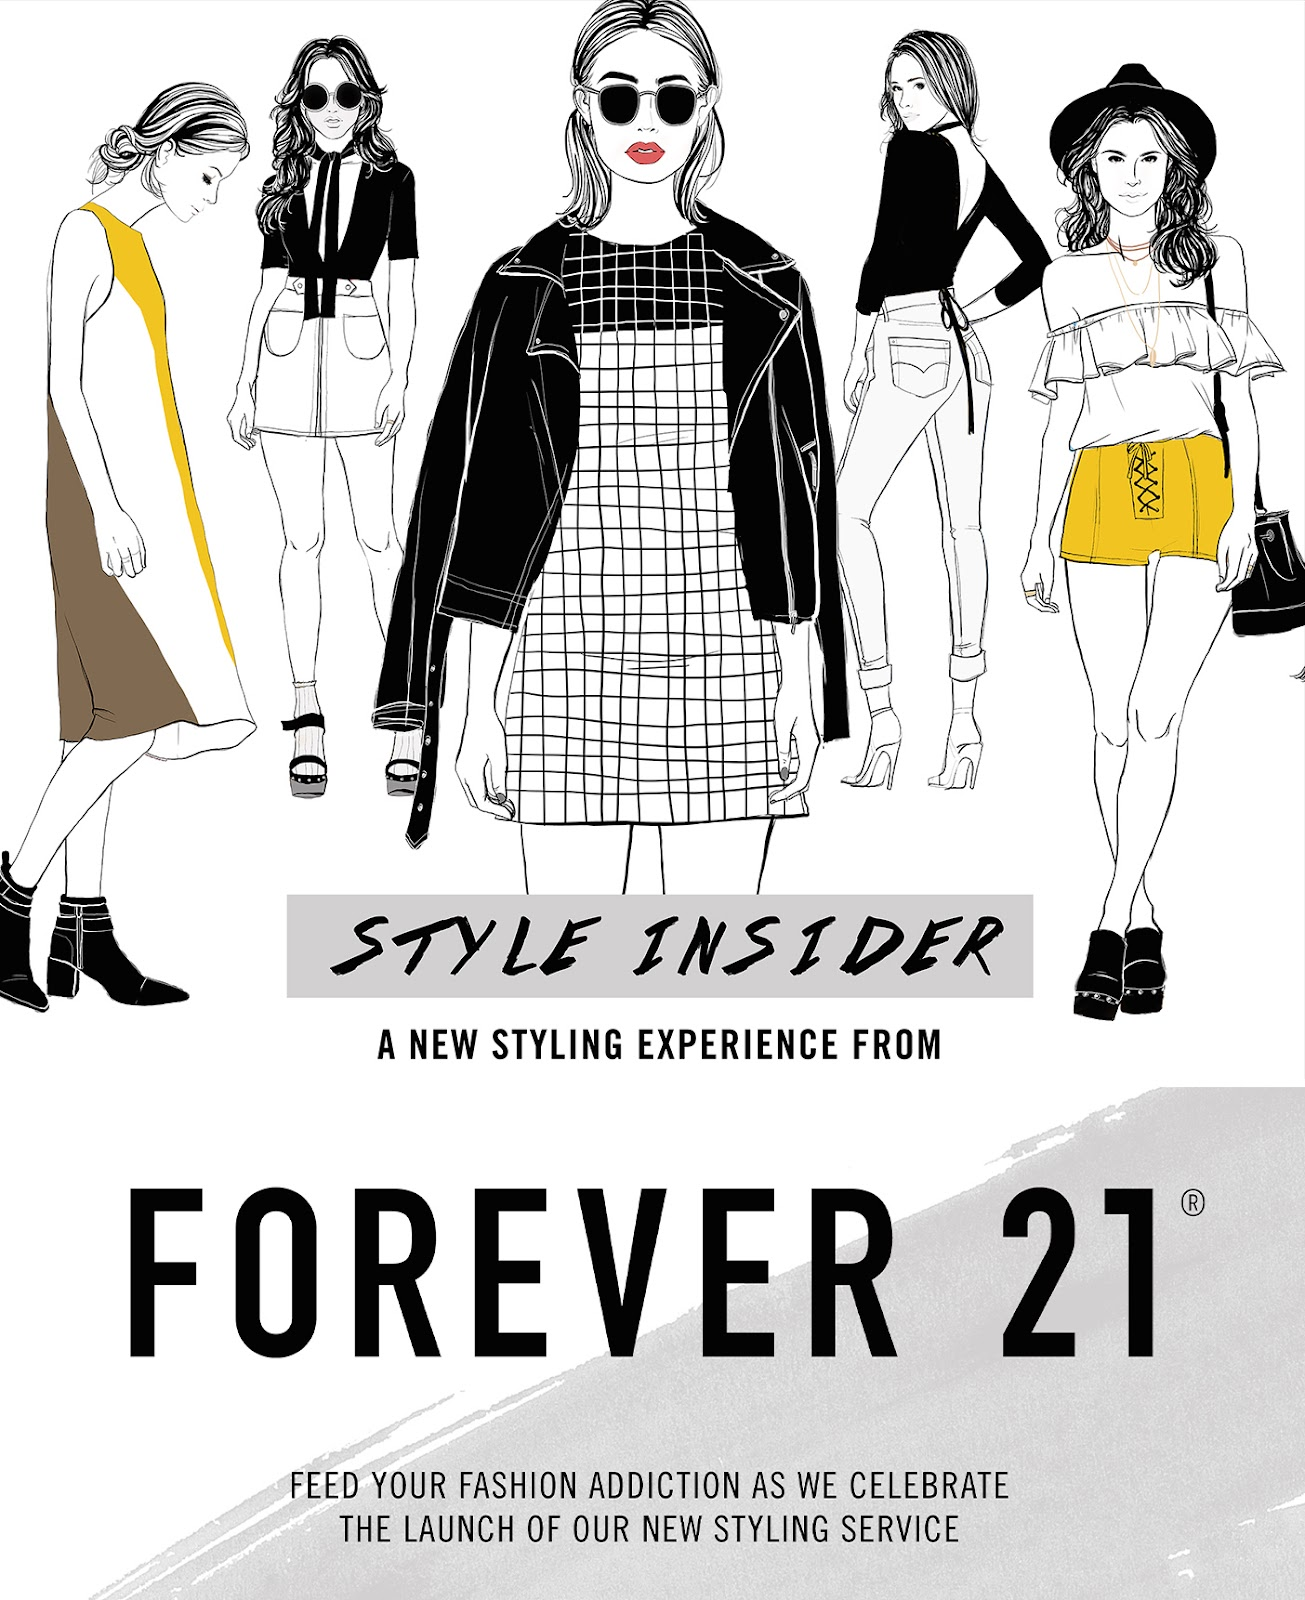 Cebu Stylist, Cebu Fashion Blogger, Cebu Beauty Blogger, Cebu Blogger, Fashion Blogger, Beauty Blogger, Cebu personalities, Style Insider, Forever21 Style Insider